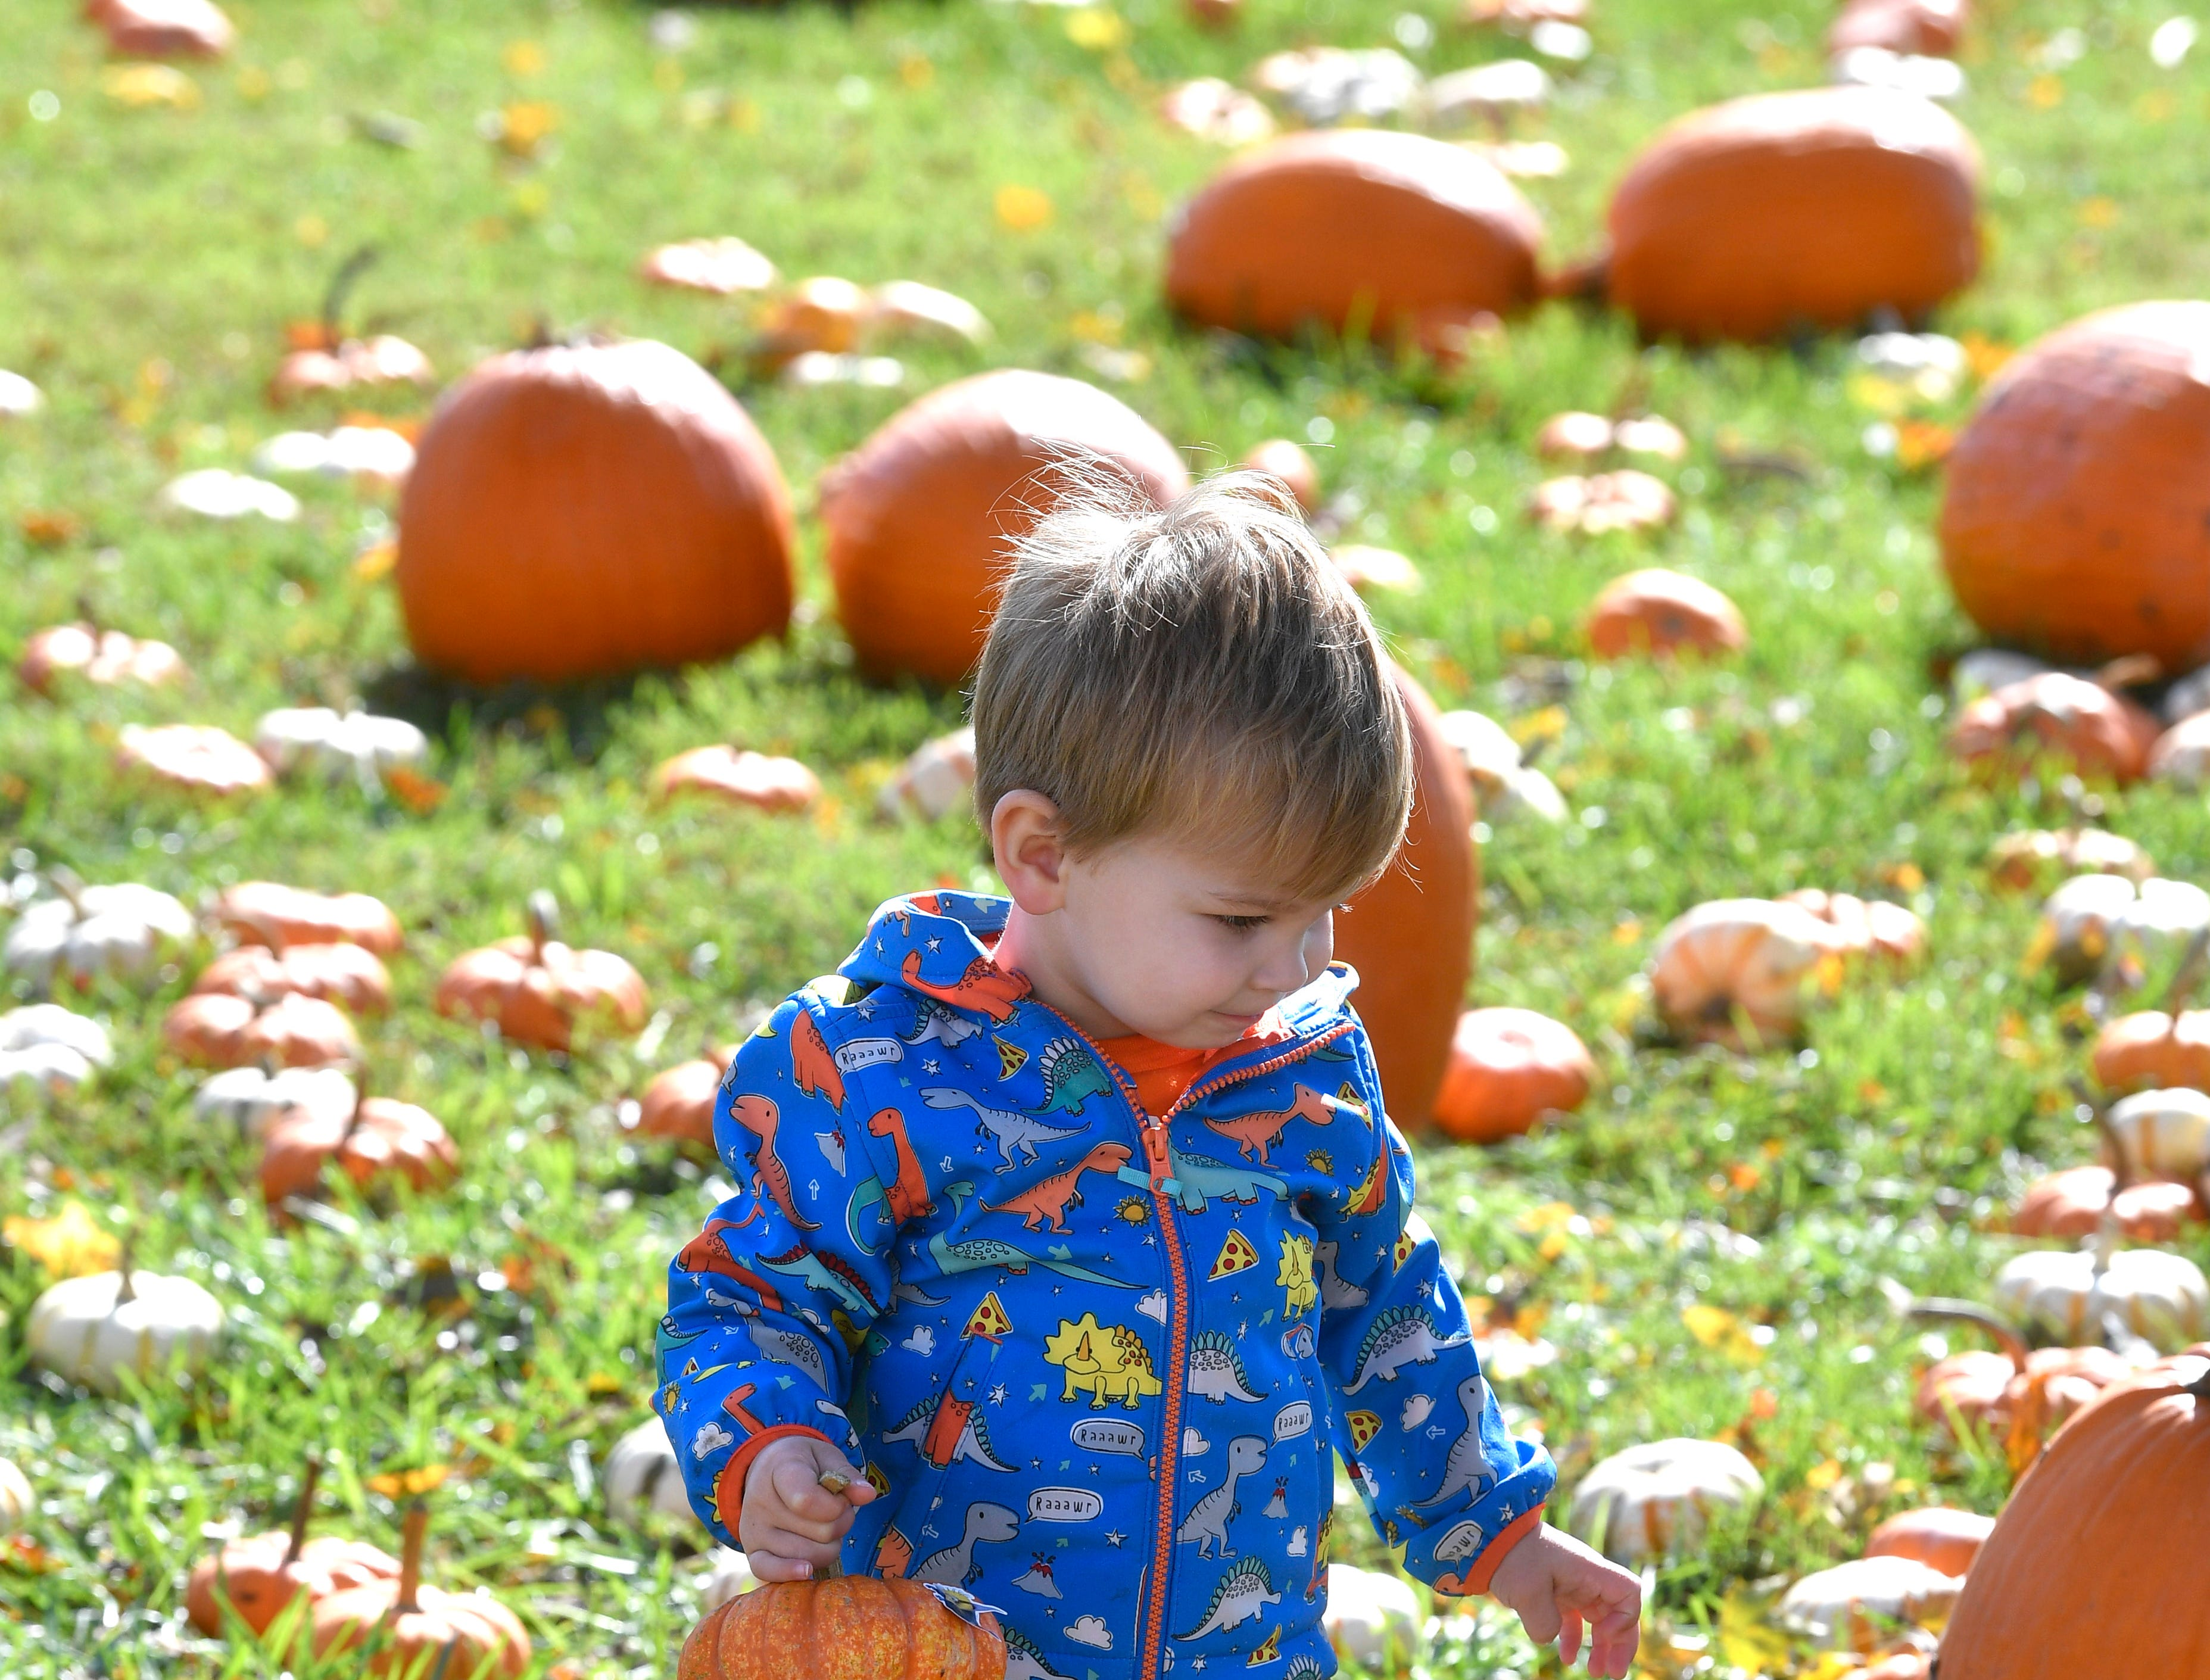 Owen Peters found the pumpkin he wants during Family Day at the Park at Harlinsdale Farms Saturday Nov. 3, 2018, in Franklin, Tenn.